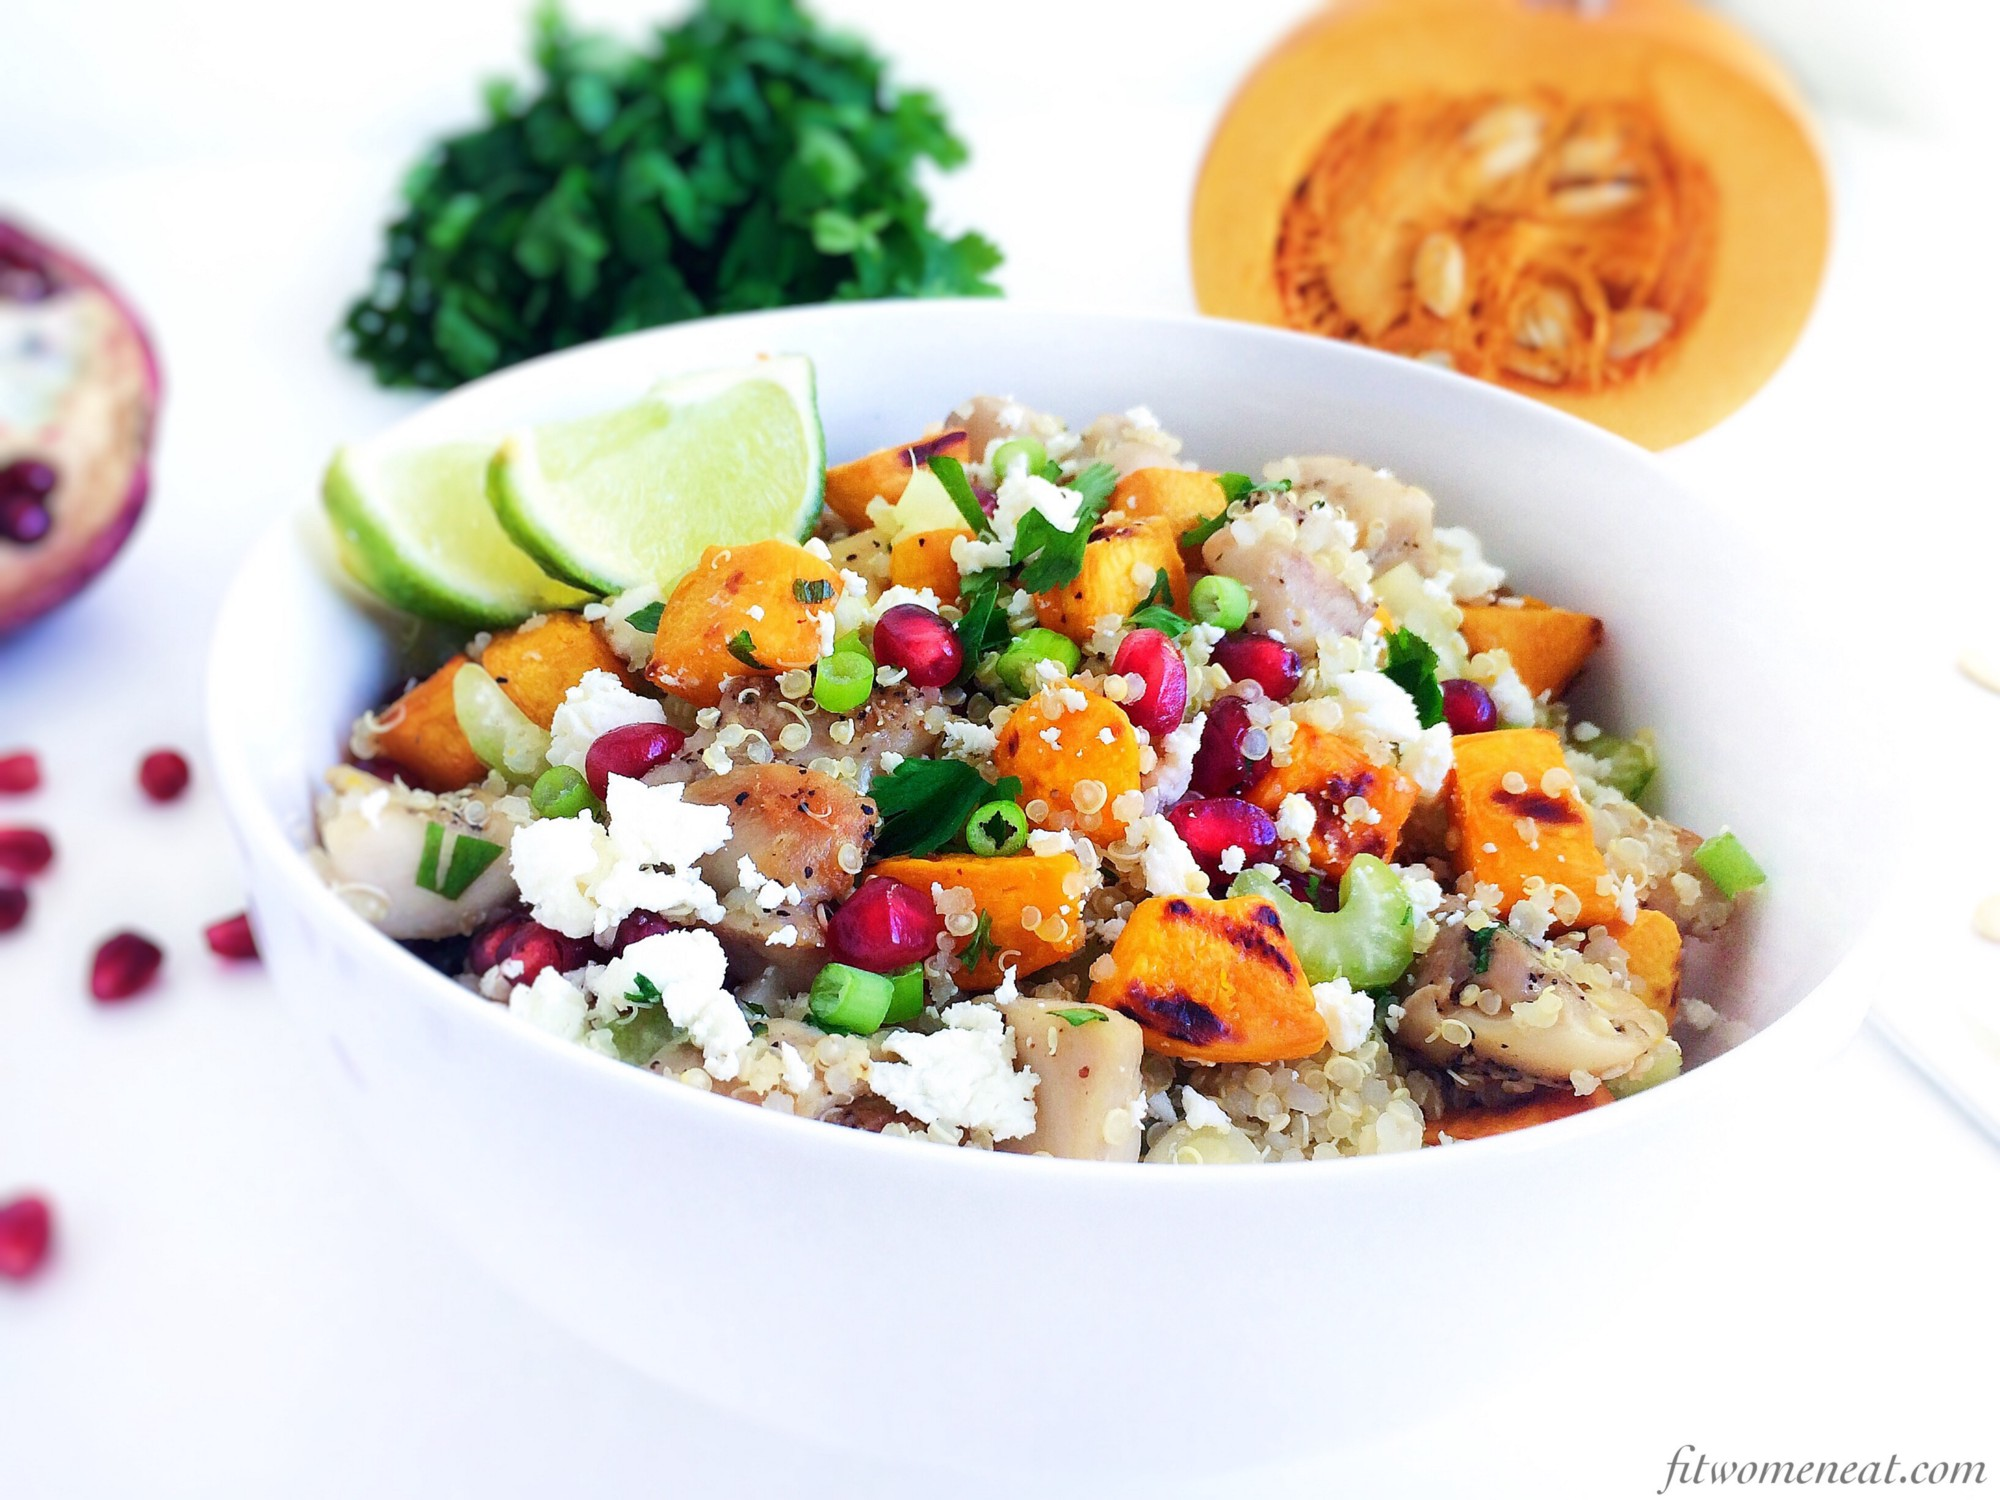 Colourful chicken quinoa salad fit women eat you can tell i love colourful foods right eating colourful vegetables and fruits has many benefits healthy eating is not just about how many vegetable forumfinder Images